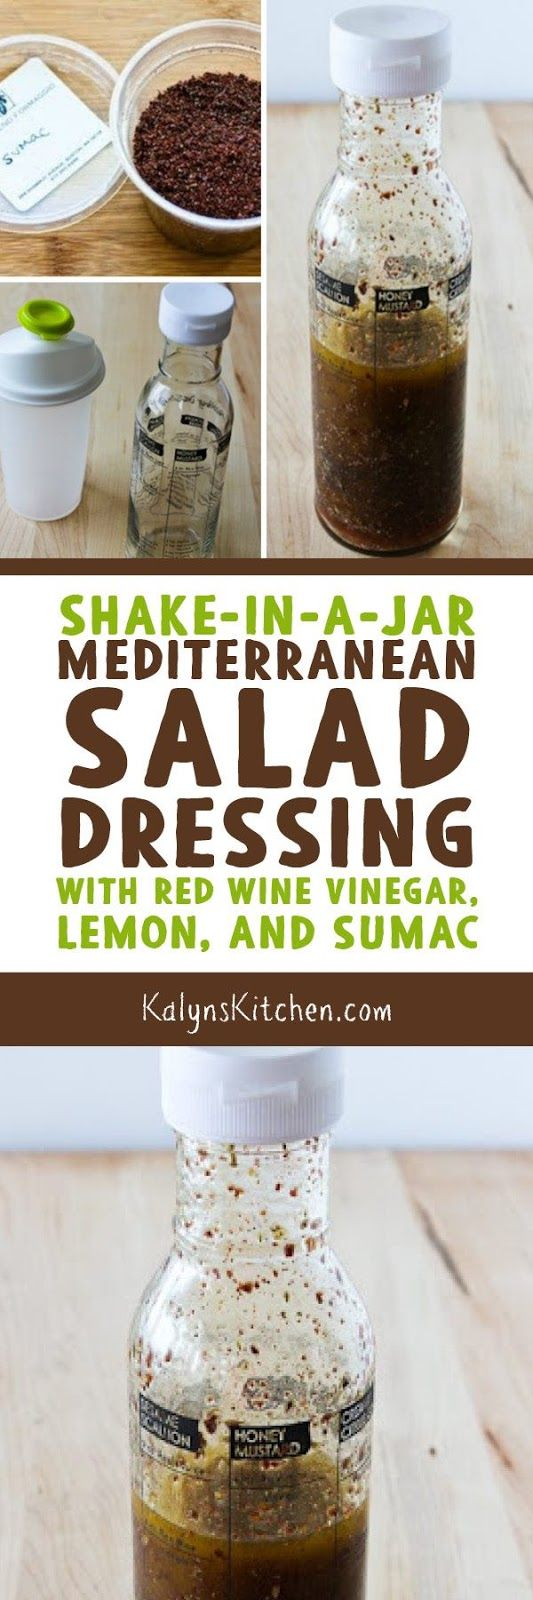 I love the lemon + Sumac dressing used on the middle eastern salad called Fattoush, and this easy-to-make Mediterranean Salad Dresing with Sumac captures all those flavors. Once you try this, you will make it OVER AND OVER, I promise. [found on KalynsKitchen.com] #MediterraneanDressing #SumacDressing #MediterraneanSumacDressing